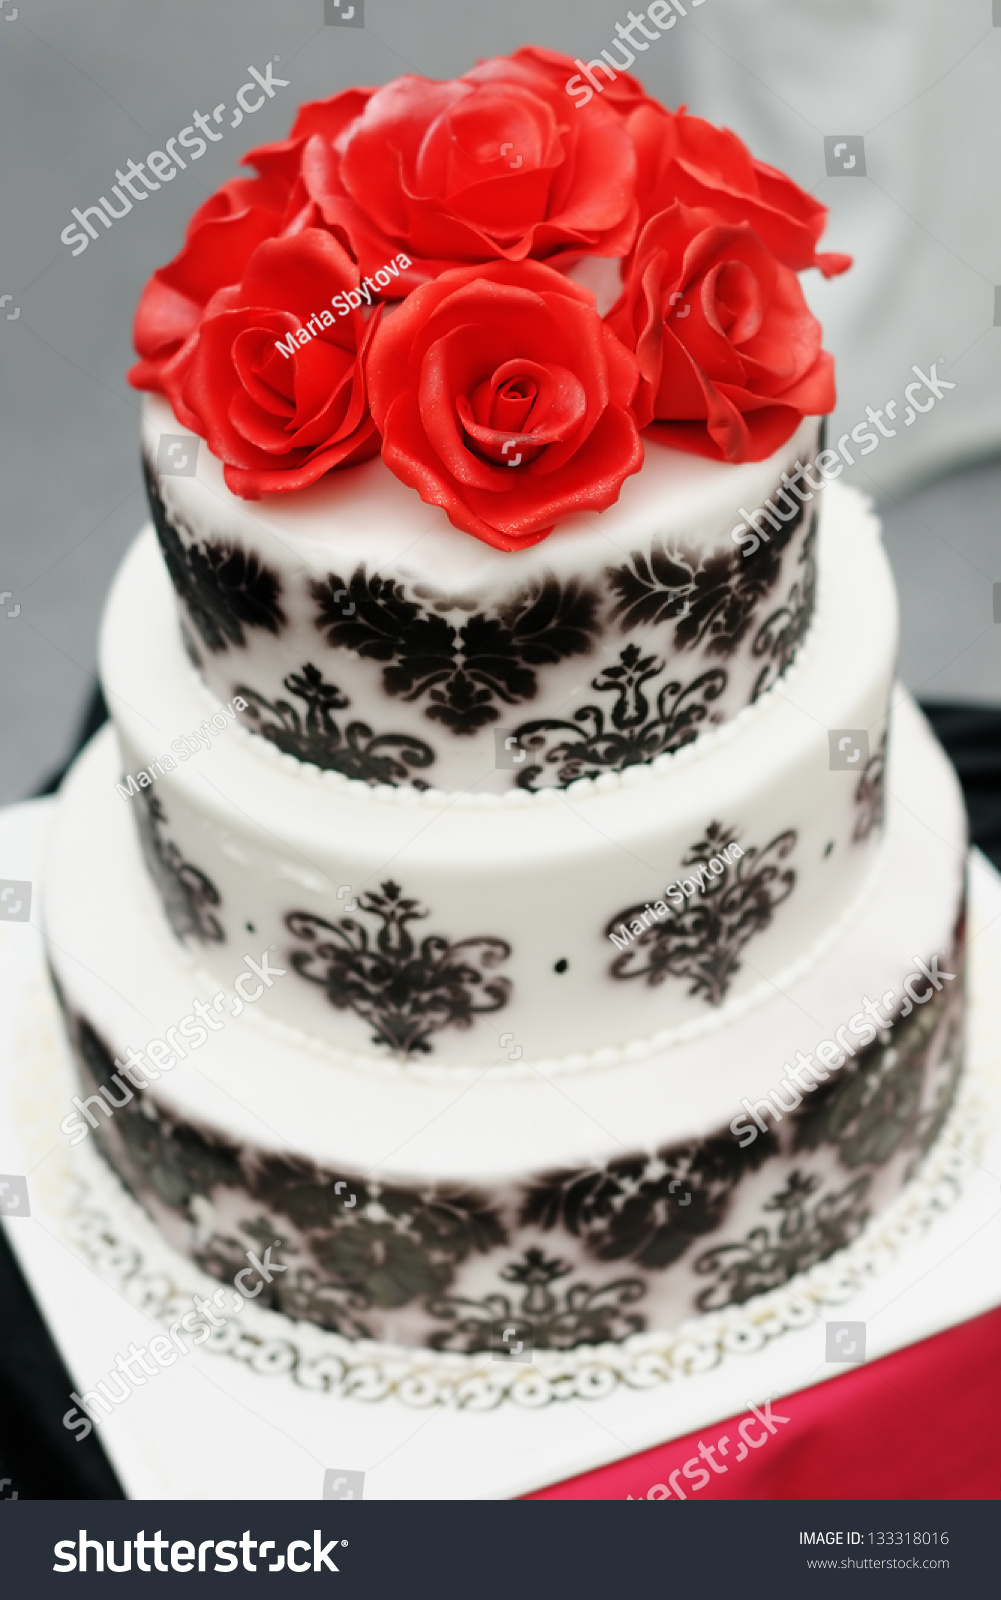 Delicious Black And White Wedding Cake Decorated With Sugar Red Roses